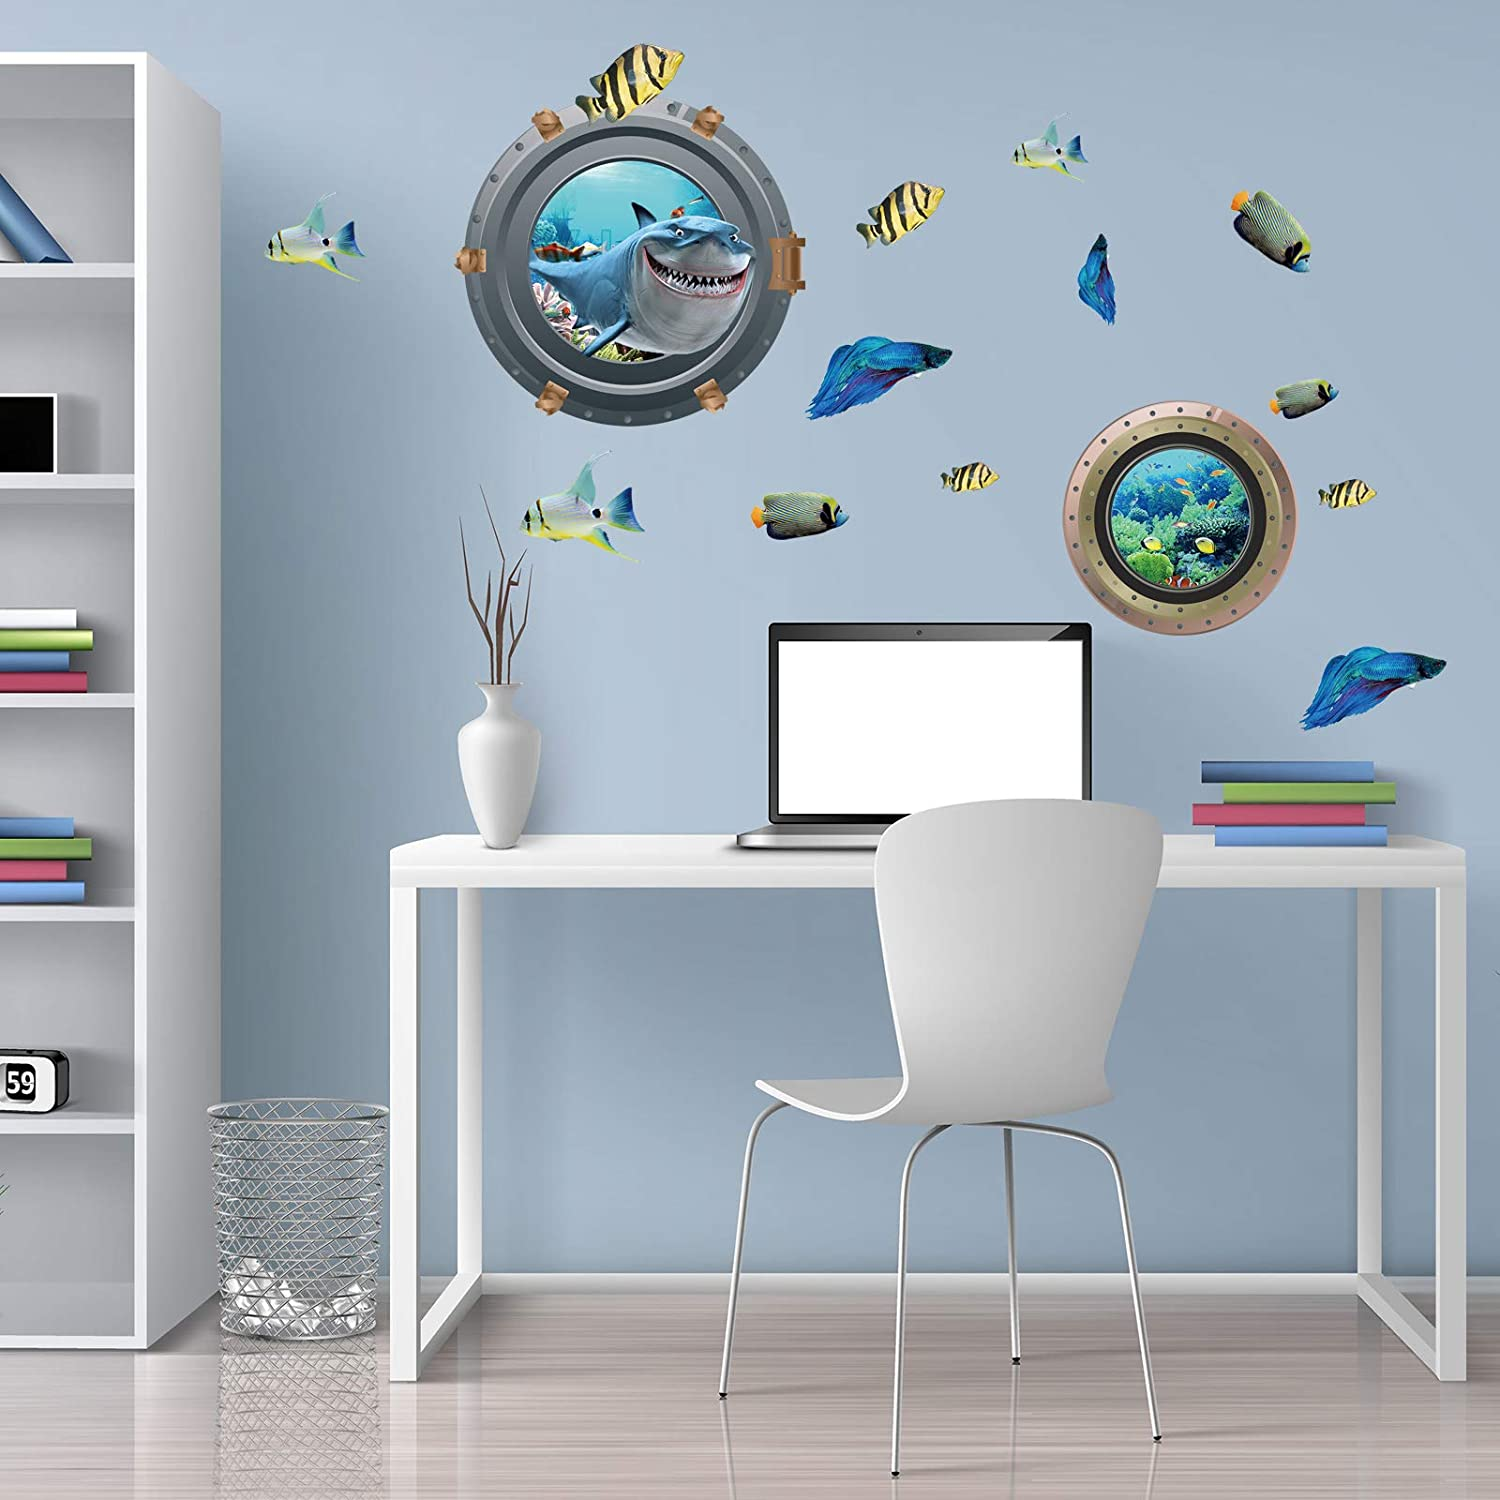 Peel and Stick Removable 11 Inches Diameter Porthole 3D Sticker Sea Life Wall Decor for Kids Nursery Bedroom Living Room Decoration 2PCS Ocean World Wall Stickers